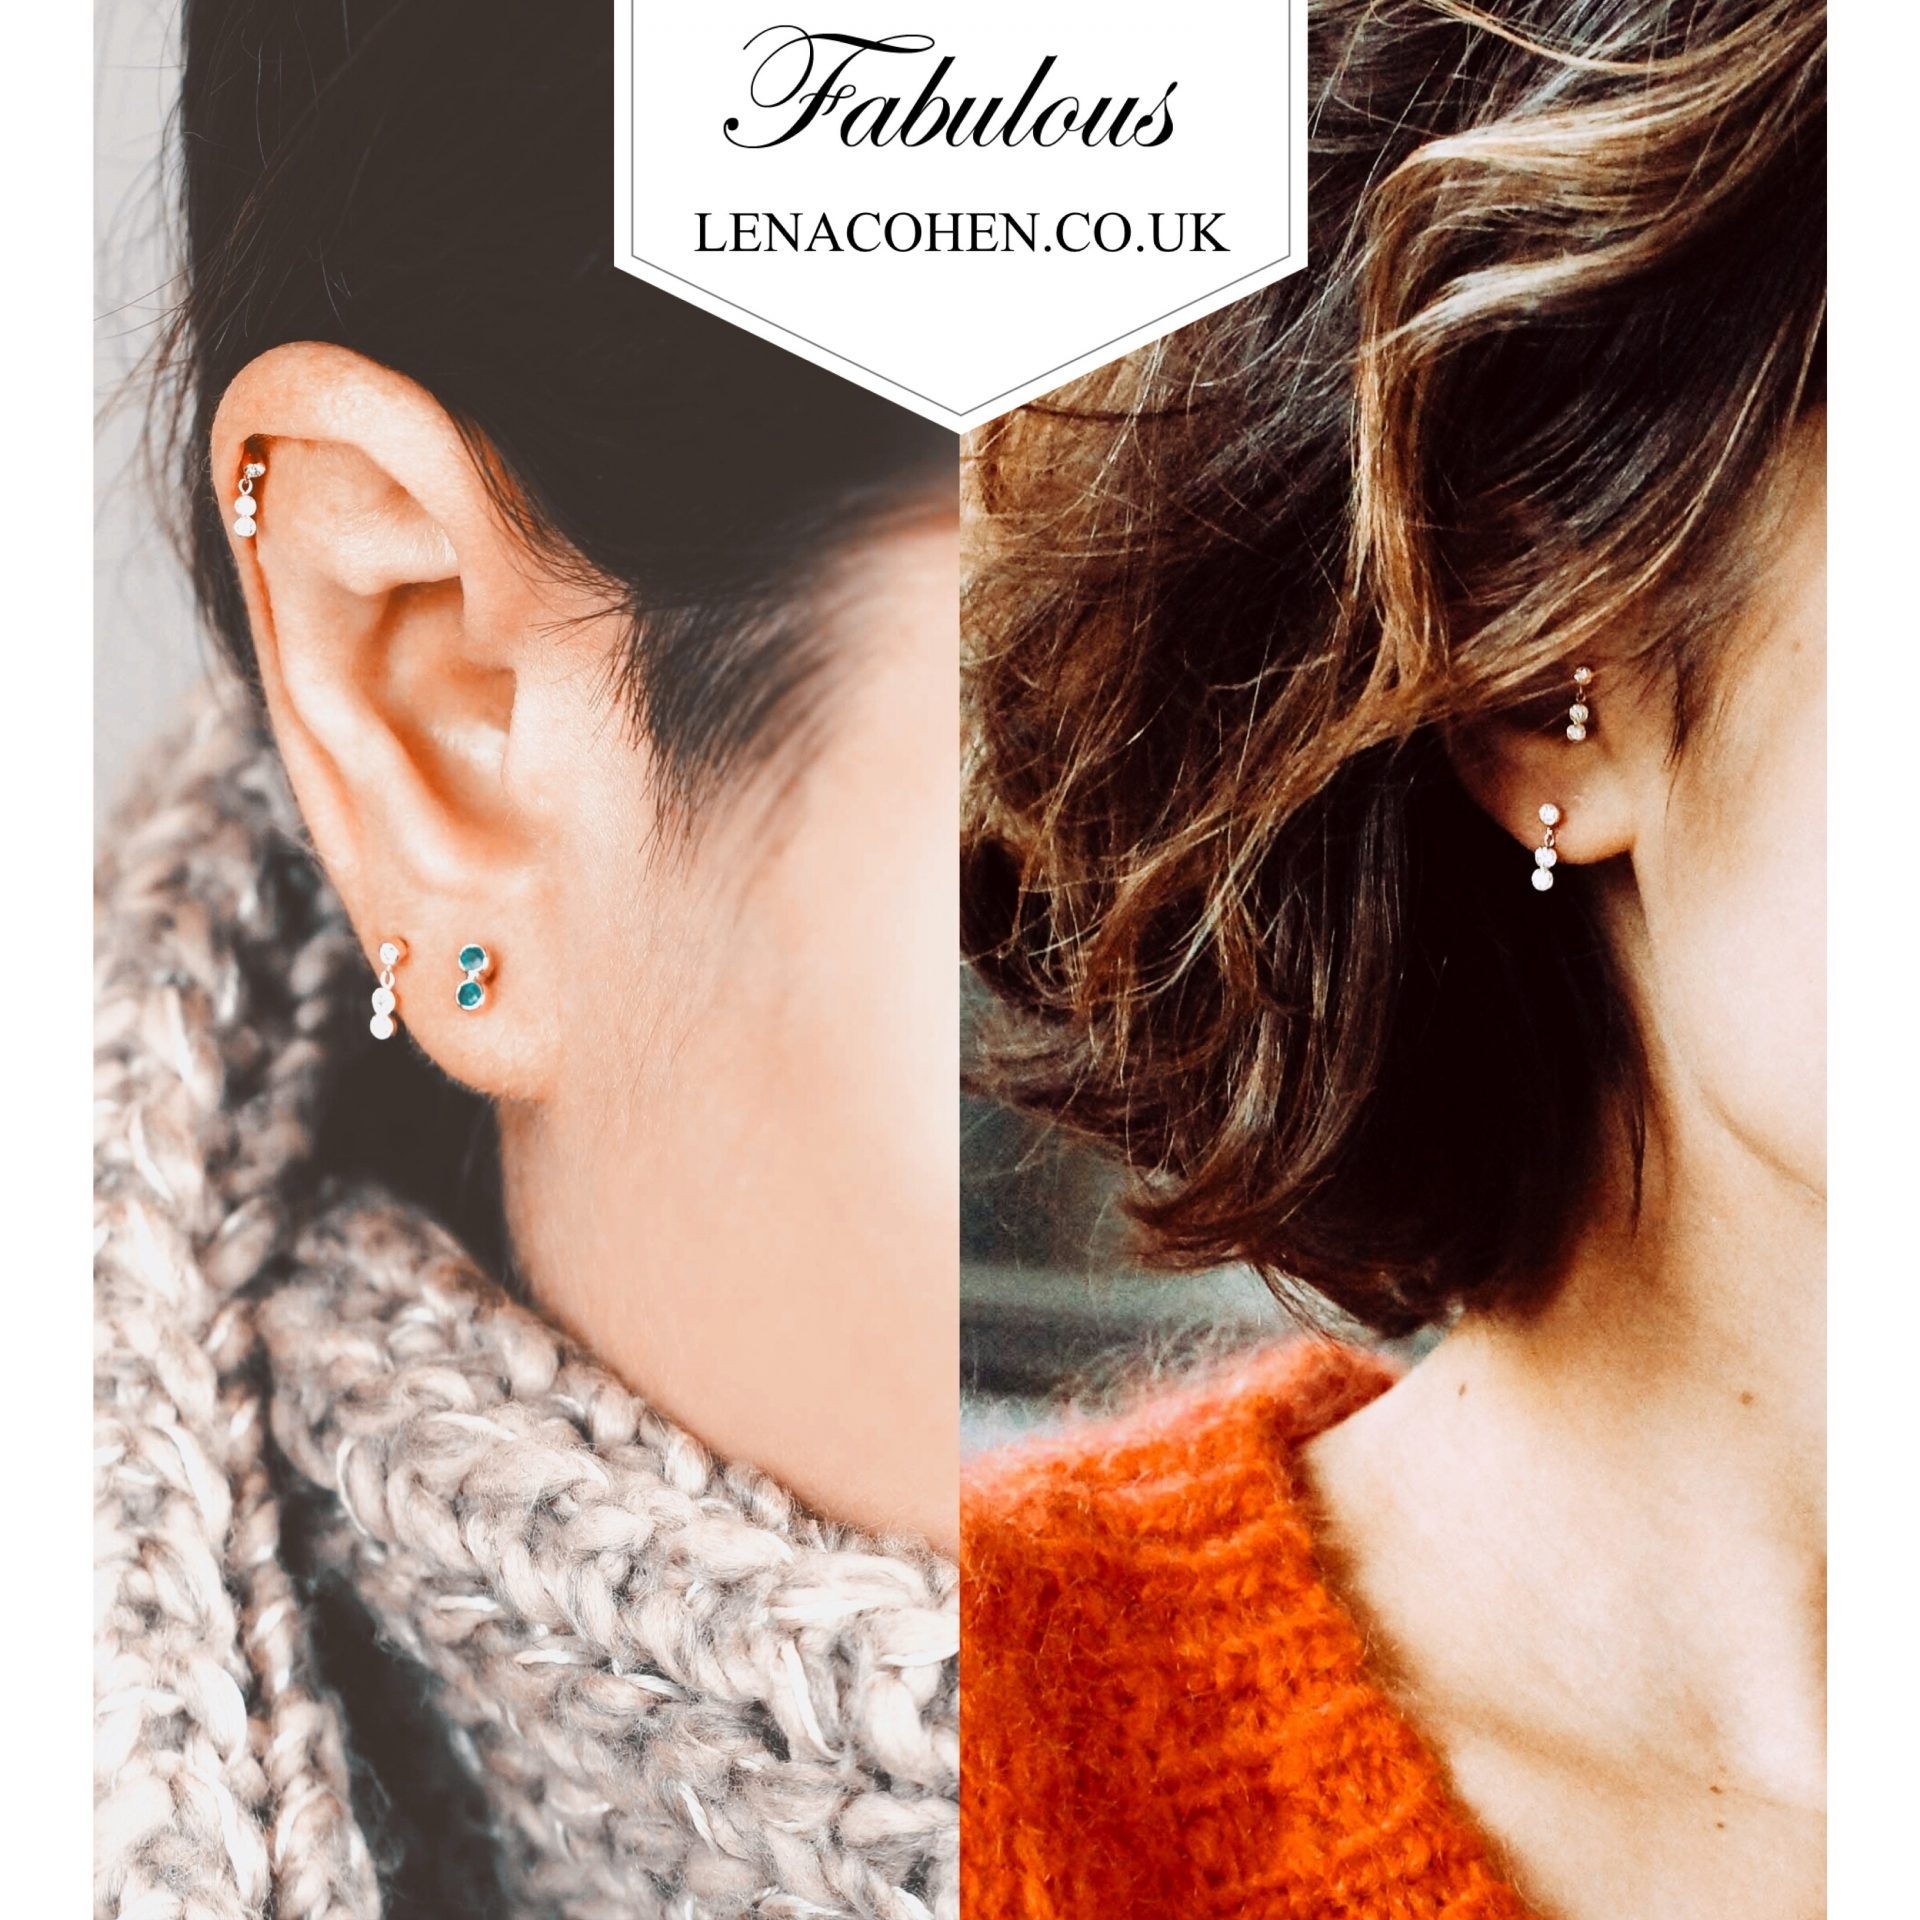 range of Luxury Piercing Earrings with the dangling addition